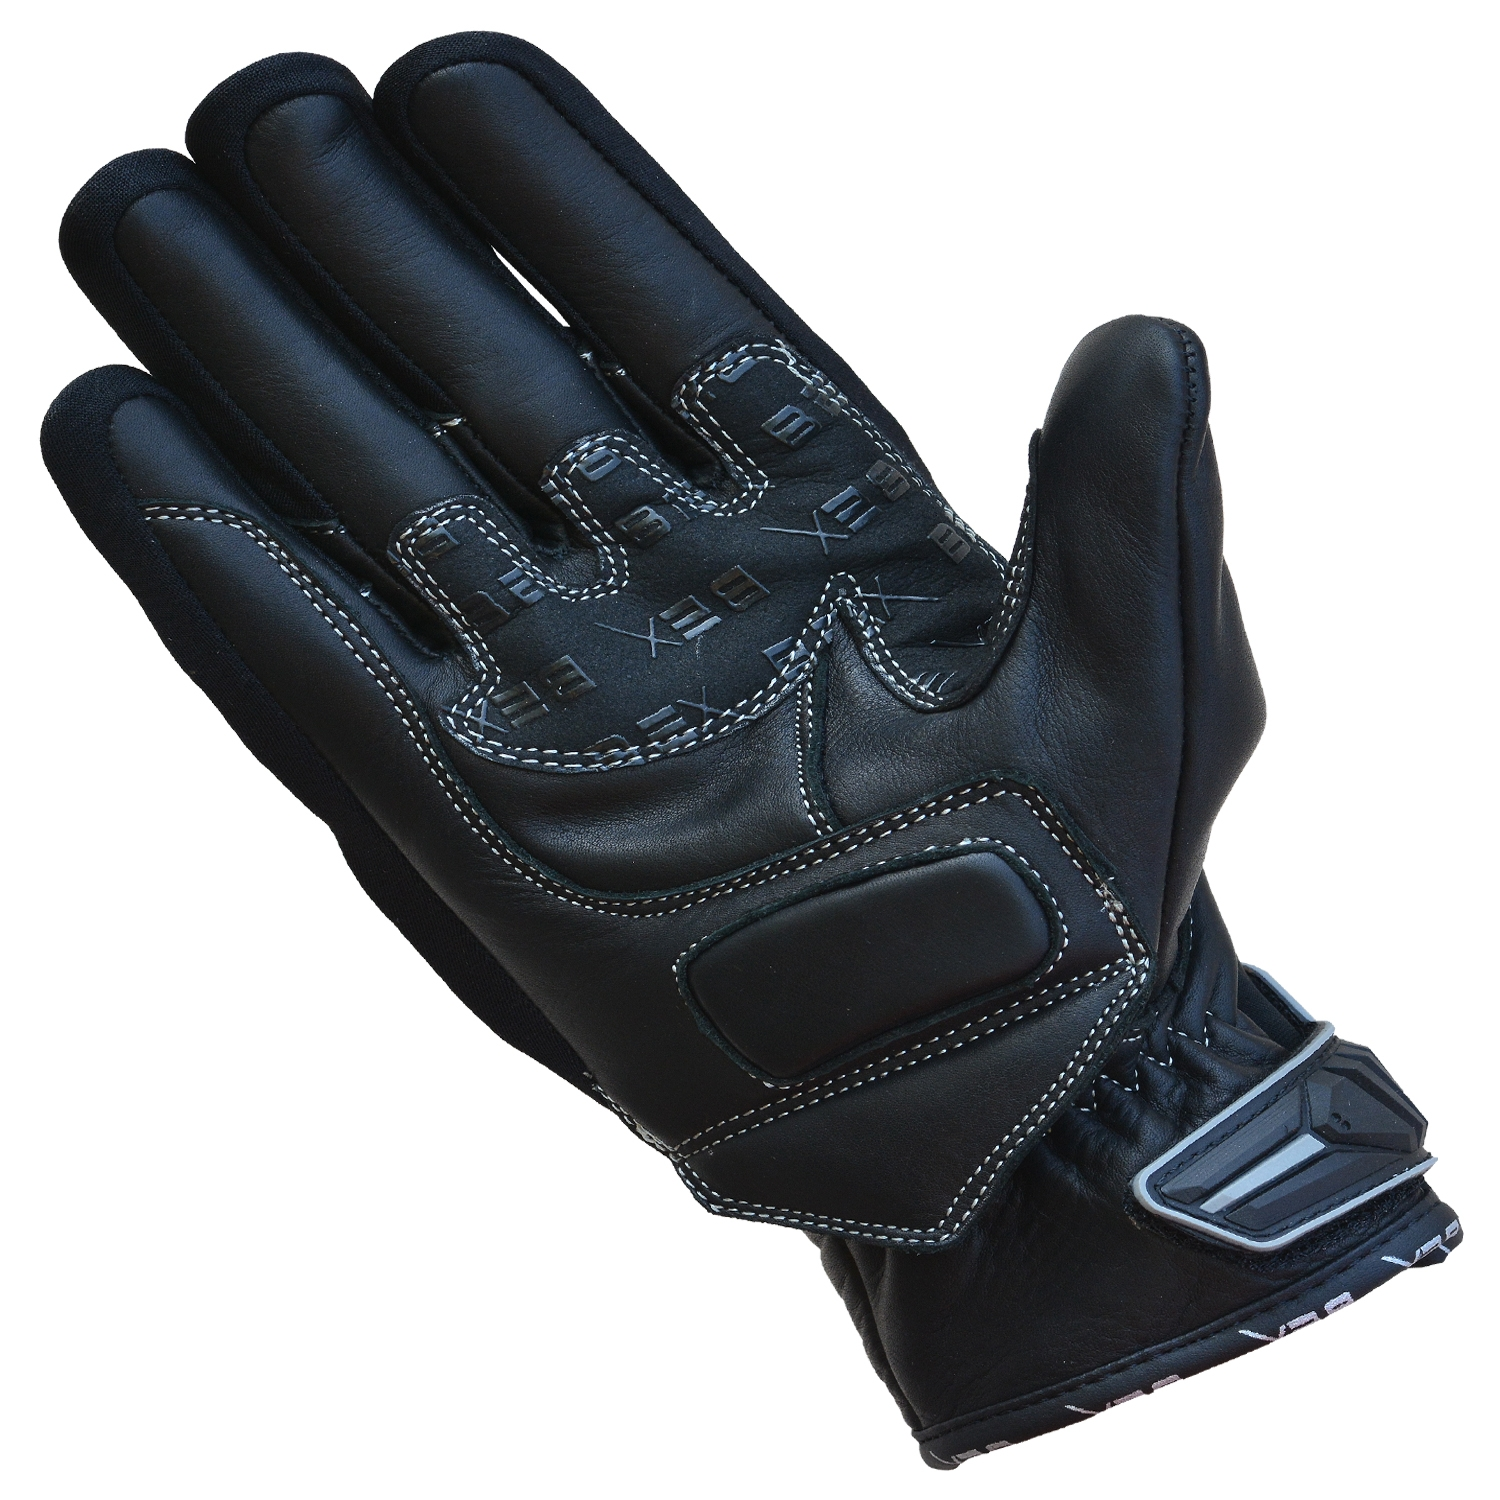 Urban Gloves